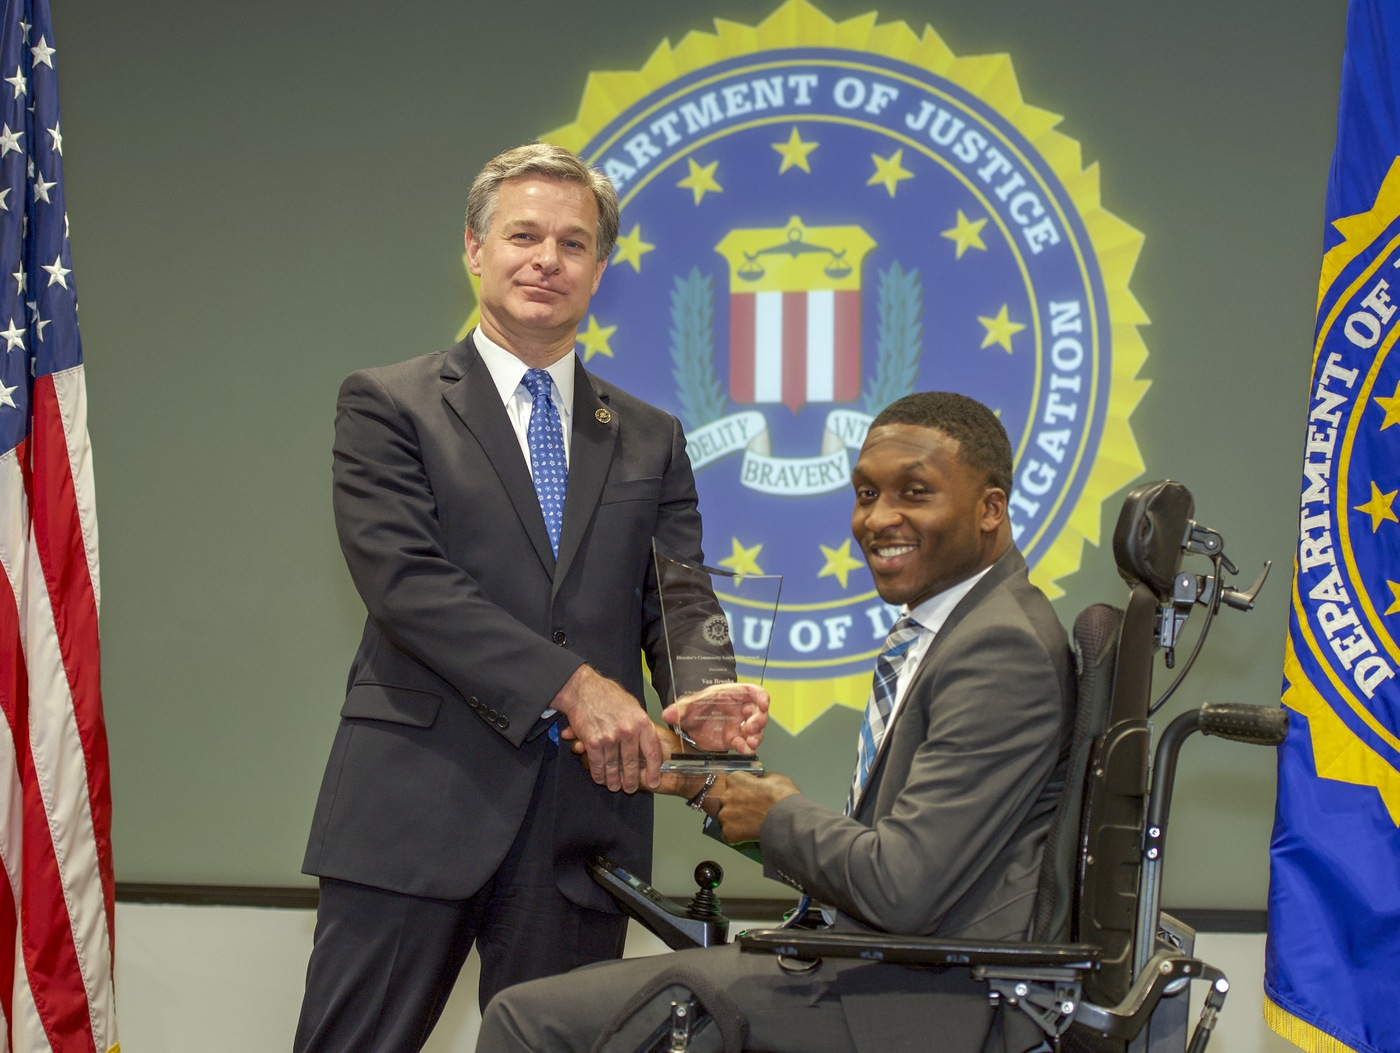 FBI Director Christopher Wray presents Baltimore Division recipient Van Brooks with the Director's Community Leadership Award (DCLA) at a ceremony at FBI Headquarters on May 3, 2019.